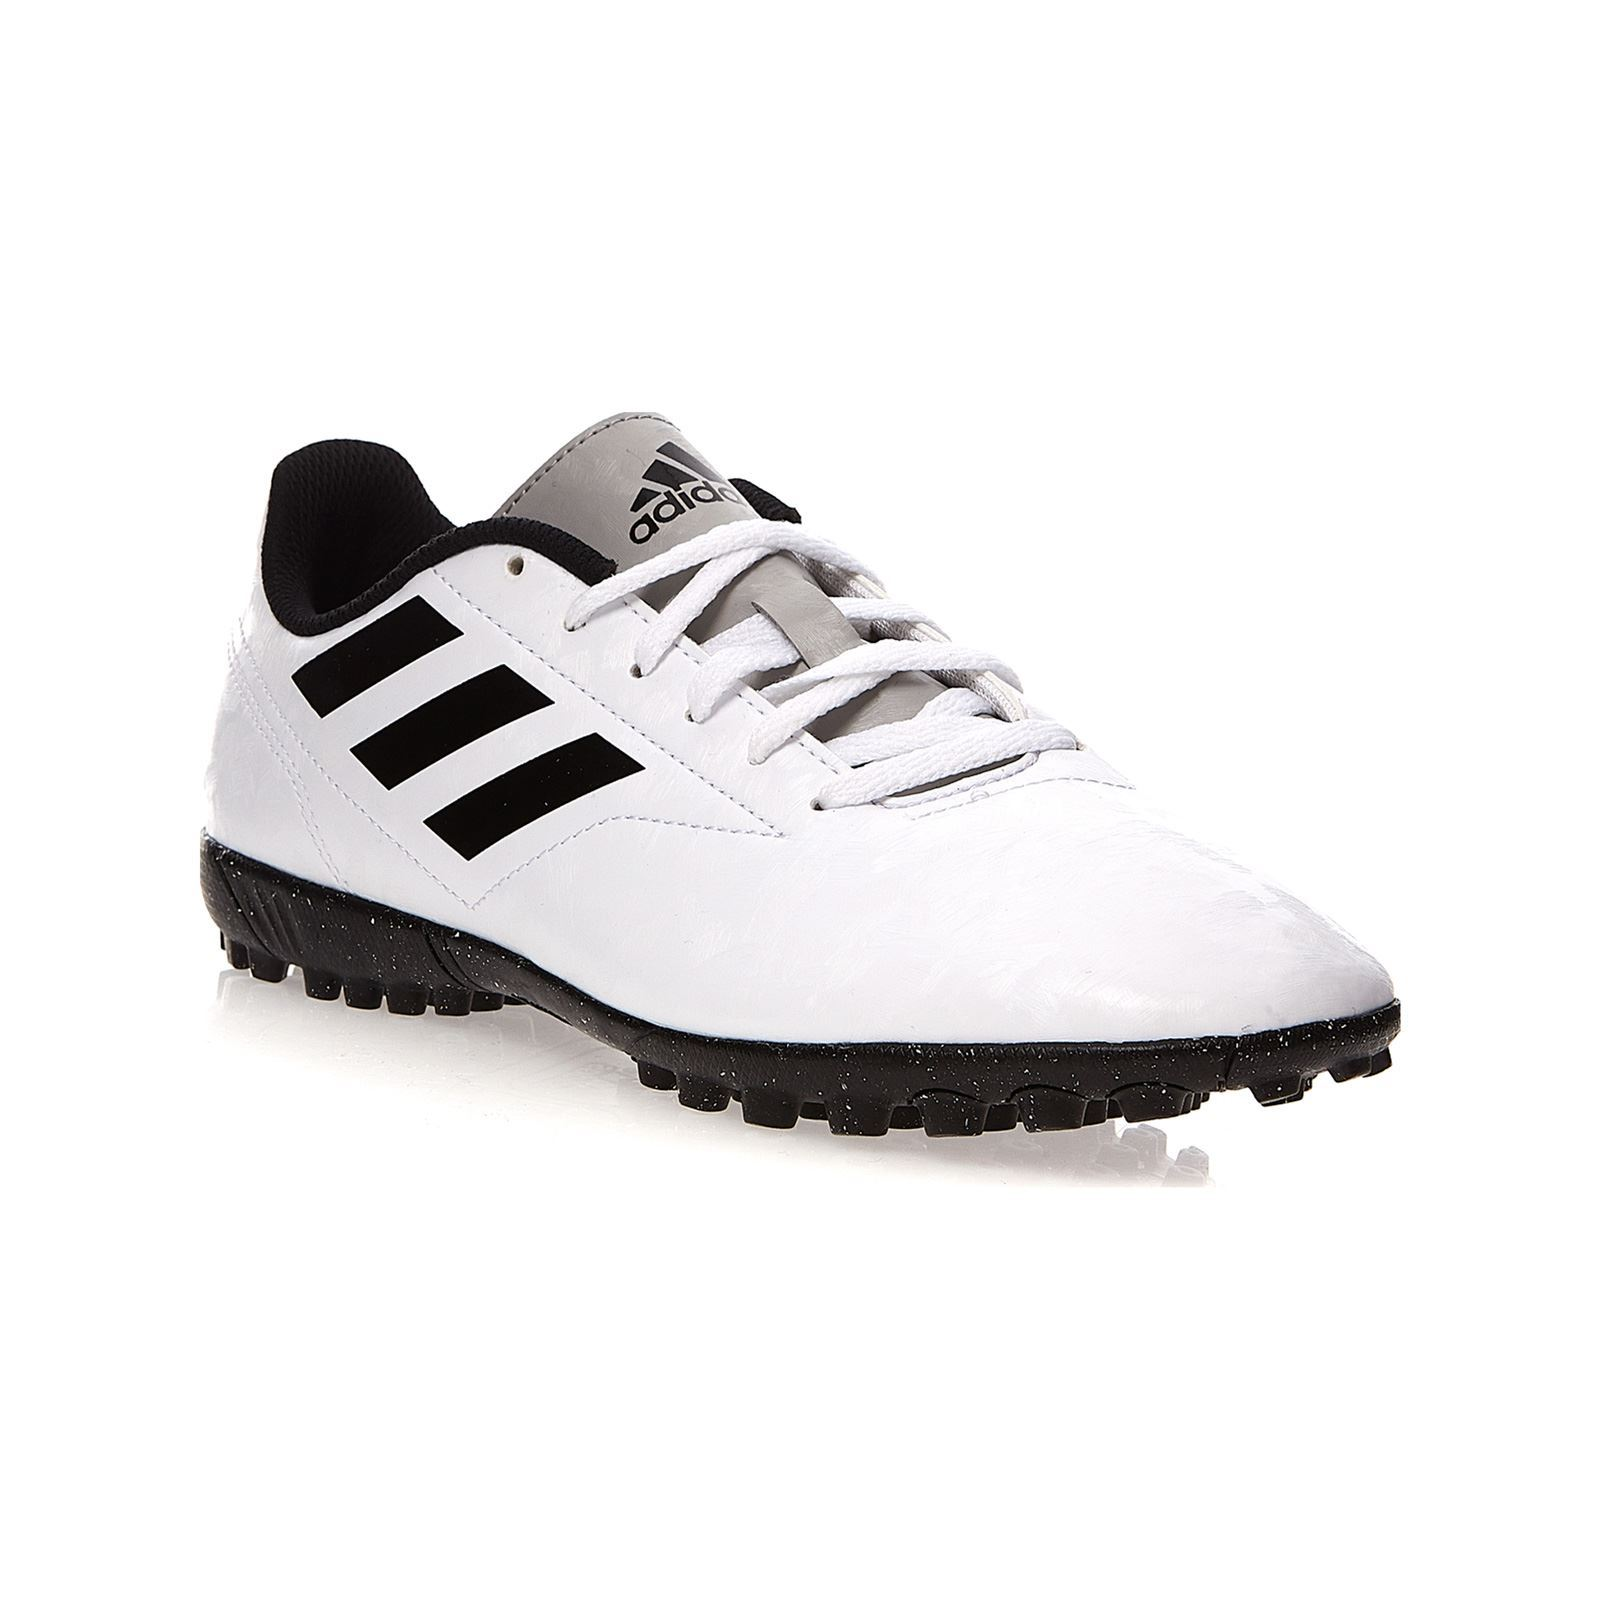 lowest price ae33a 188b0 ADIDAS PERFORMANCE Conquisto II TF - Chaussures de sport - blanc